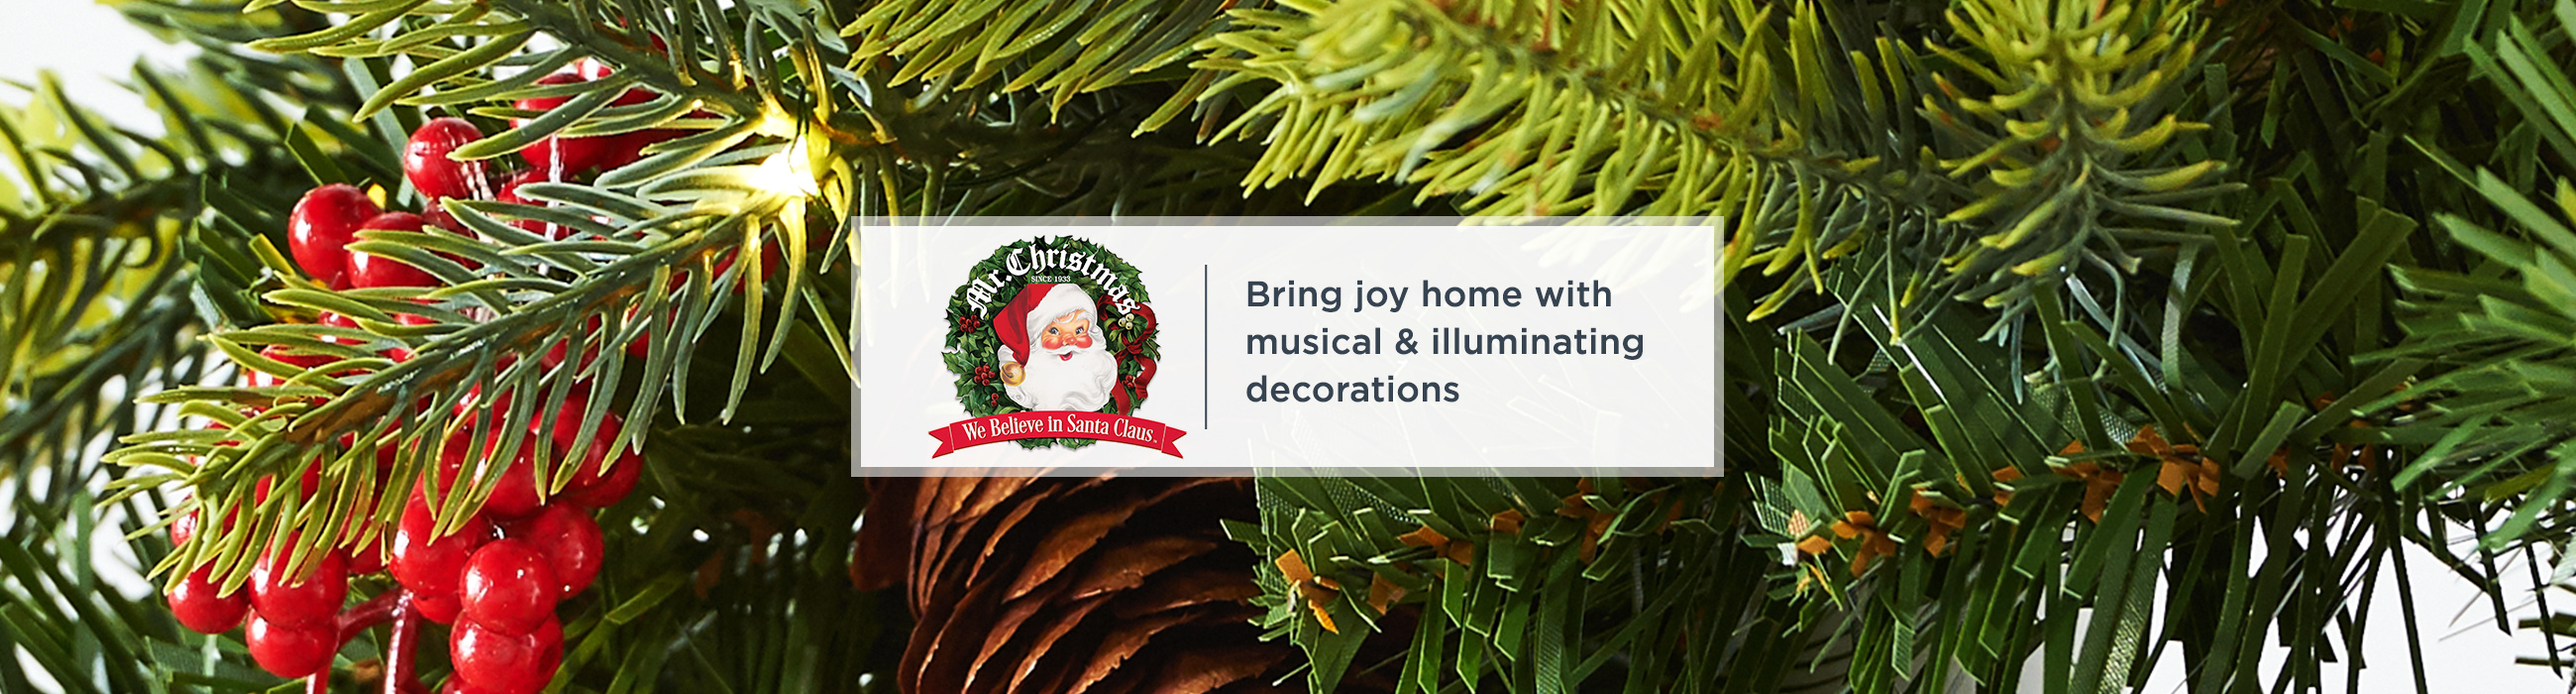 Mr. Christmas — Bring joy home with musical & illuminating decorations